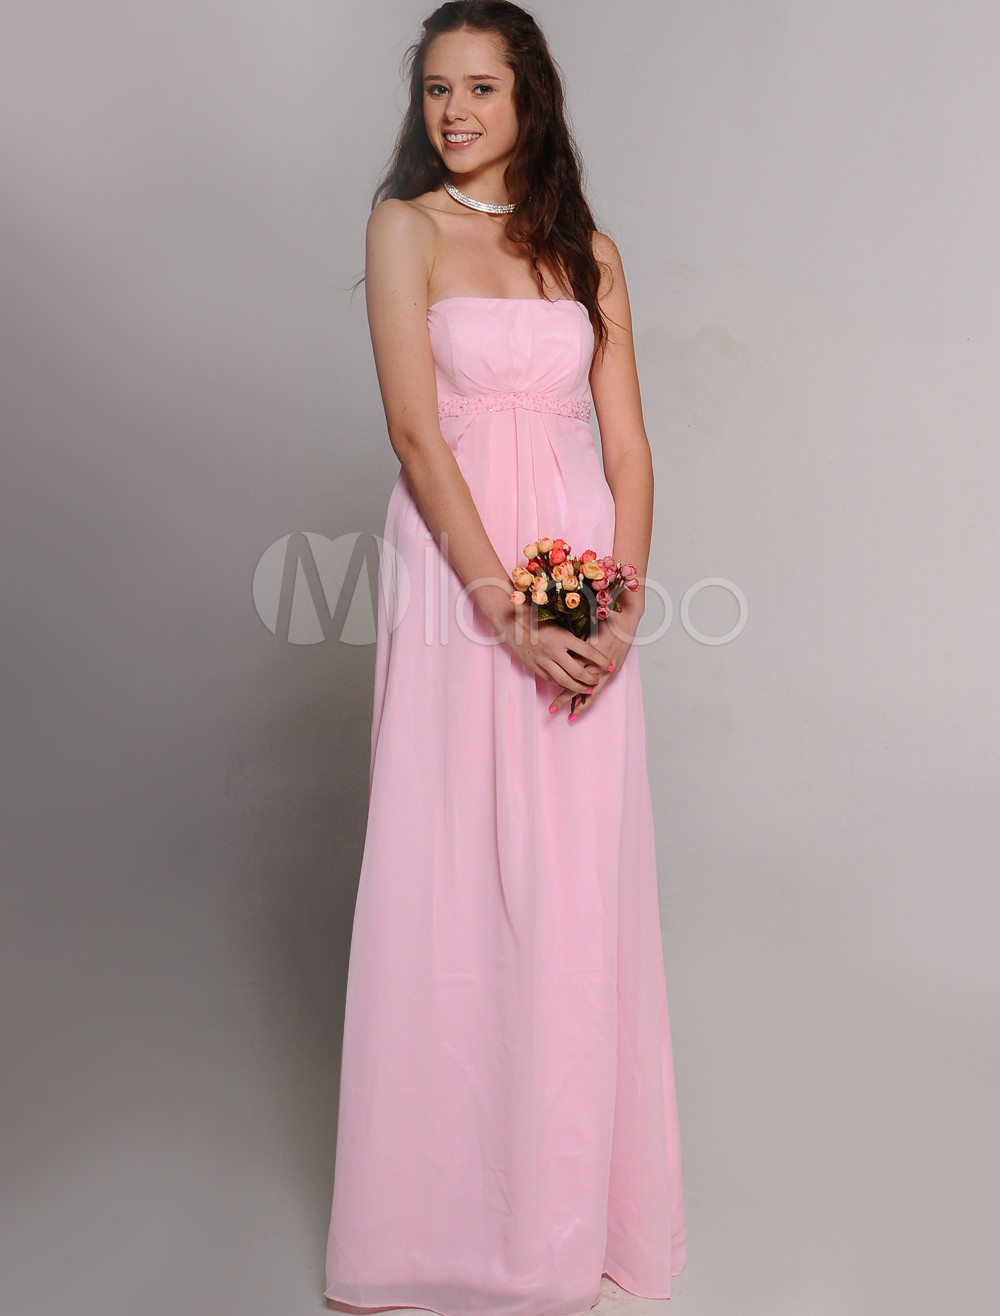 Sheath Strapless Pleated Pink Chiffon Bridesmaid Dress